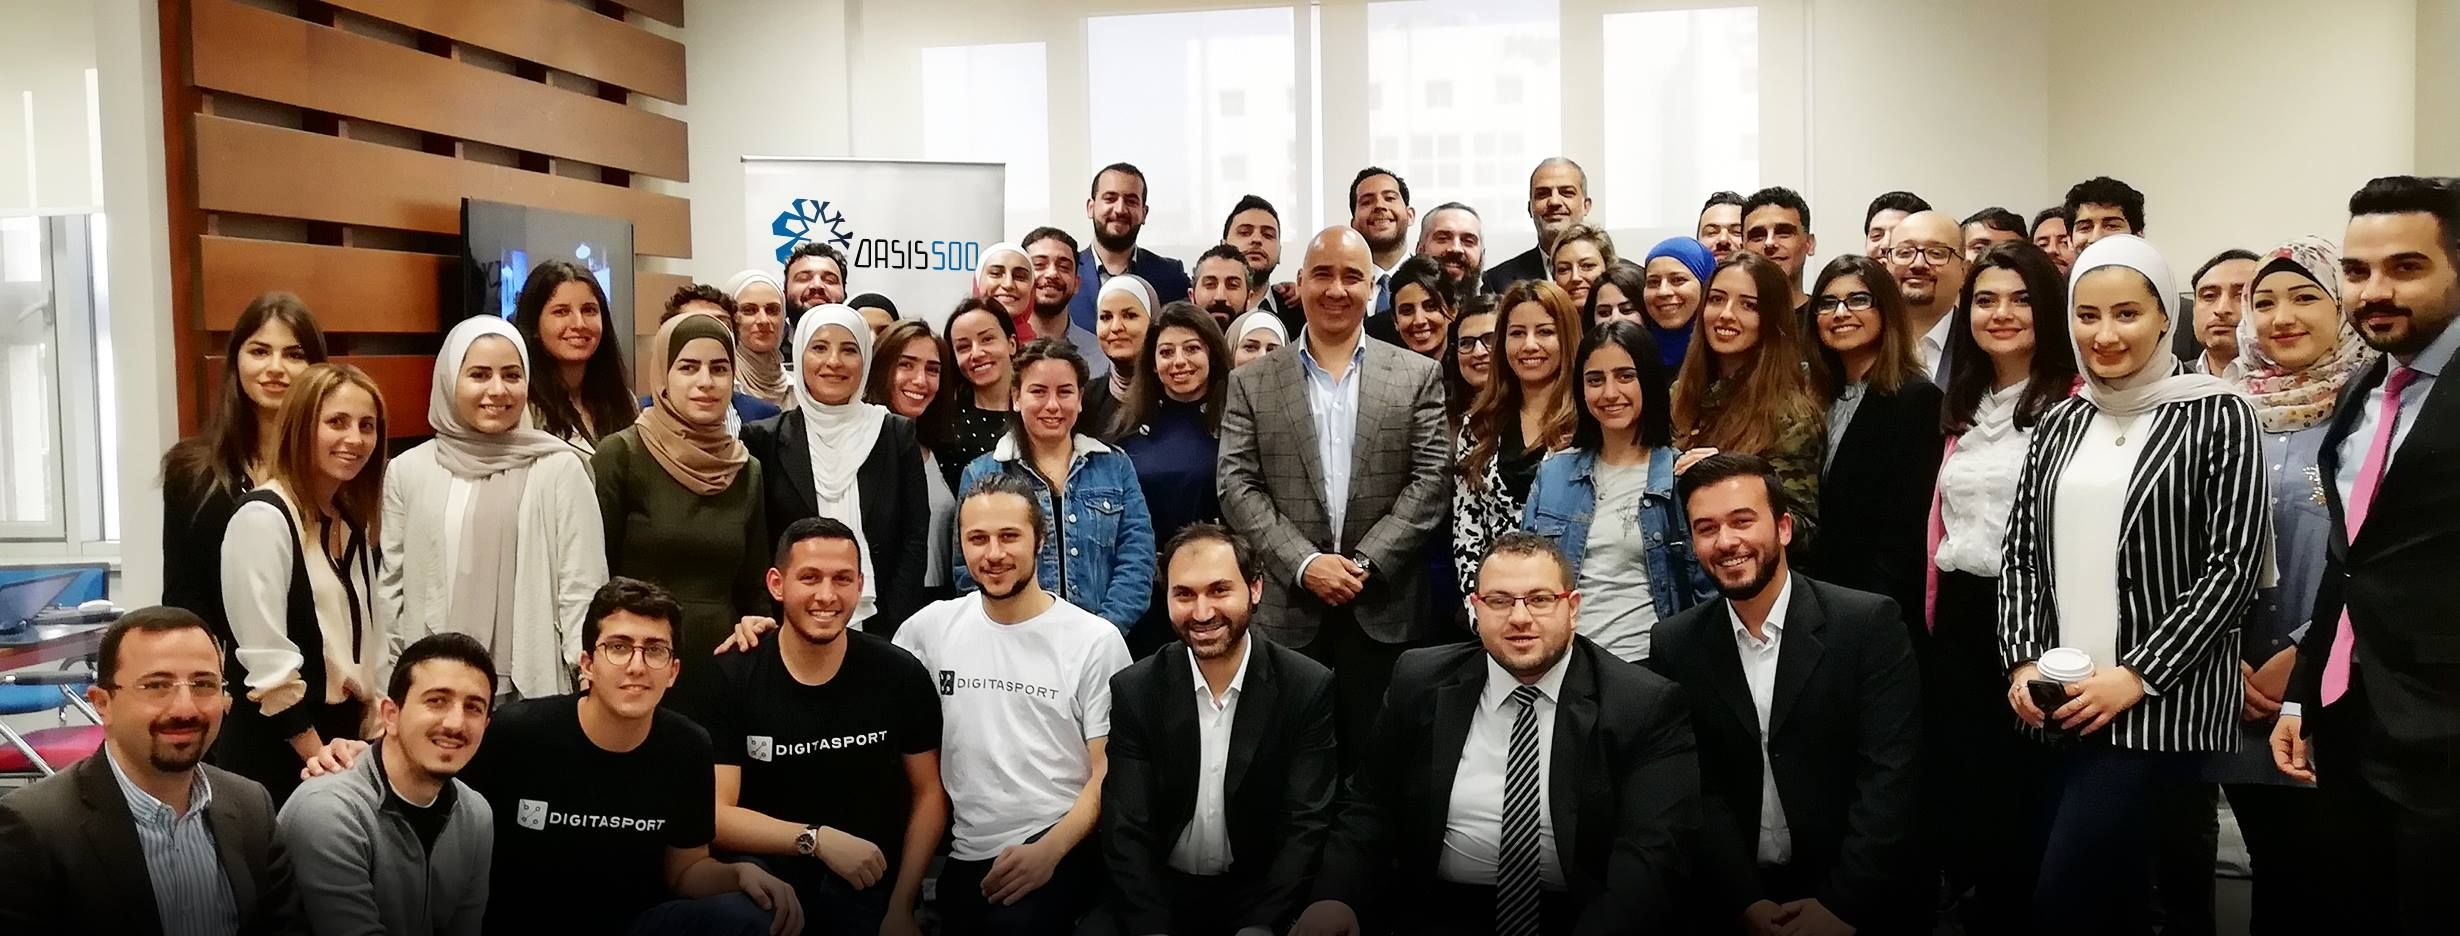 Oasis500 launches second fund